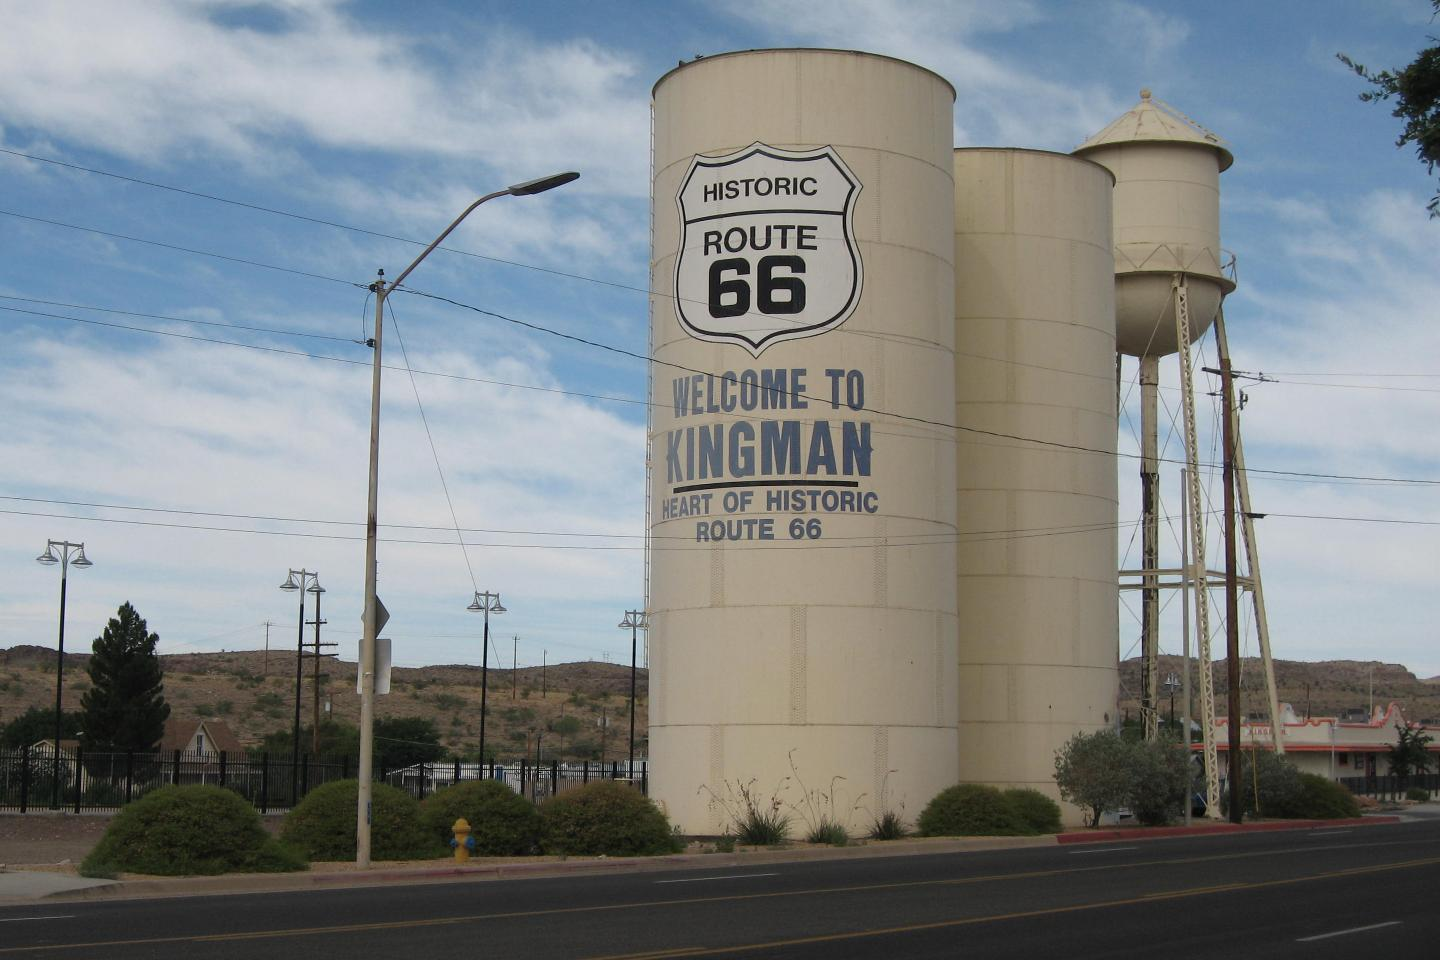 Water Tower Homes Homes For Sale In Kingman Az Patti Woodward